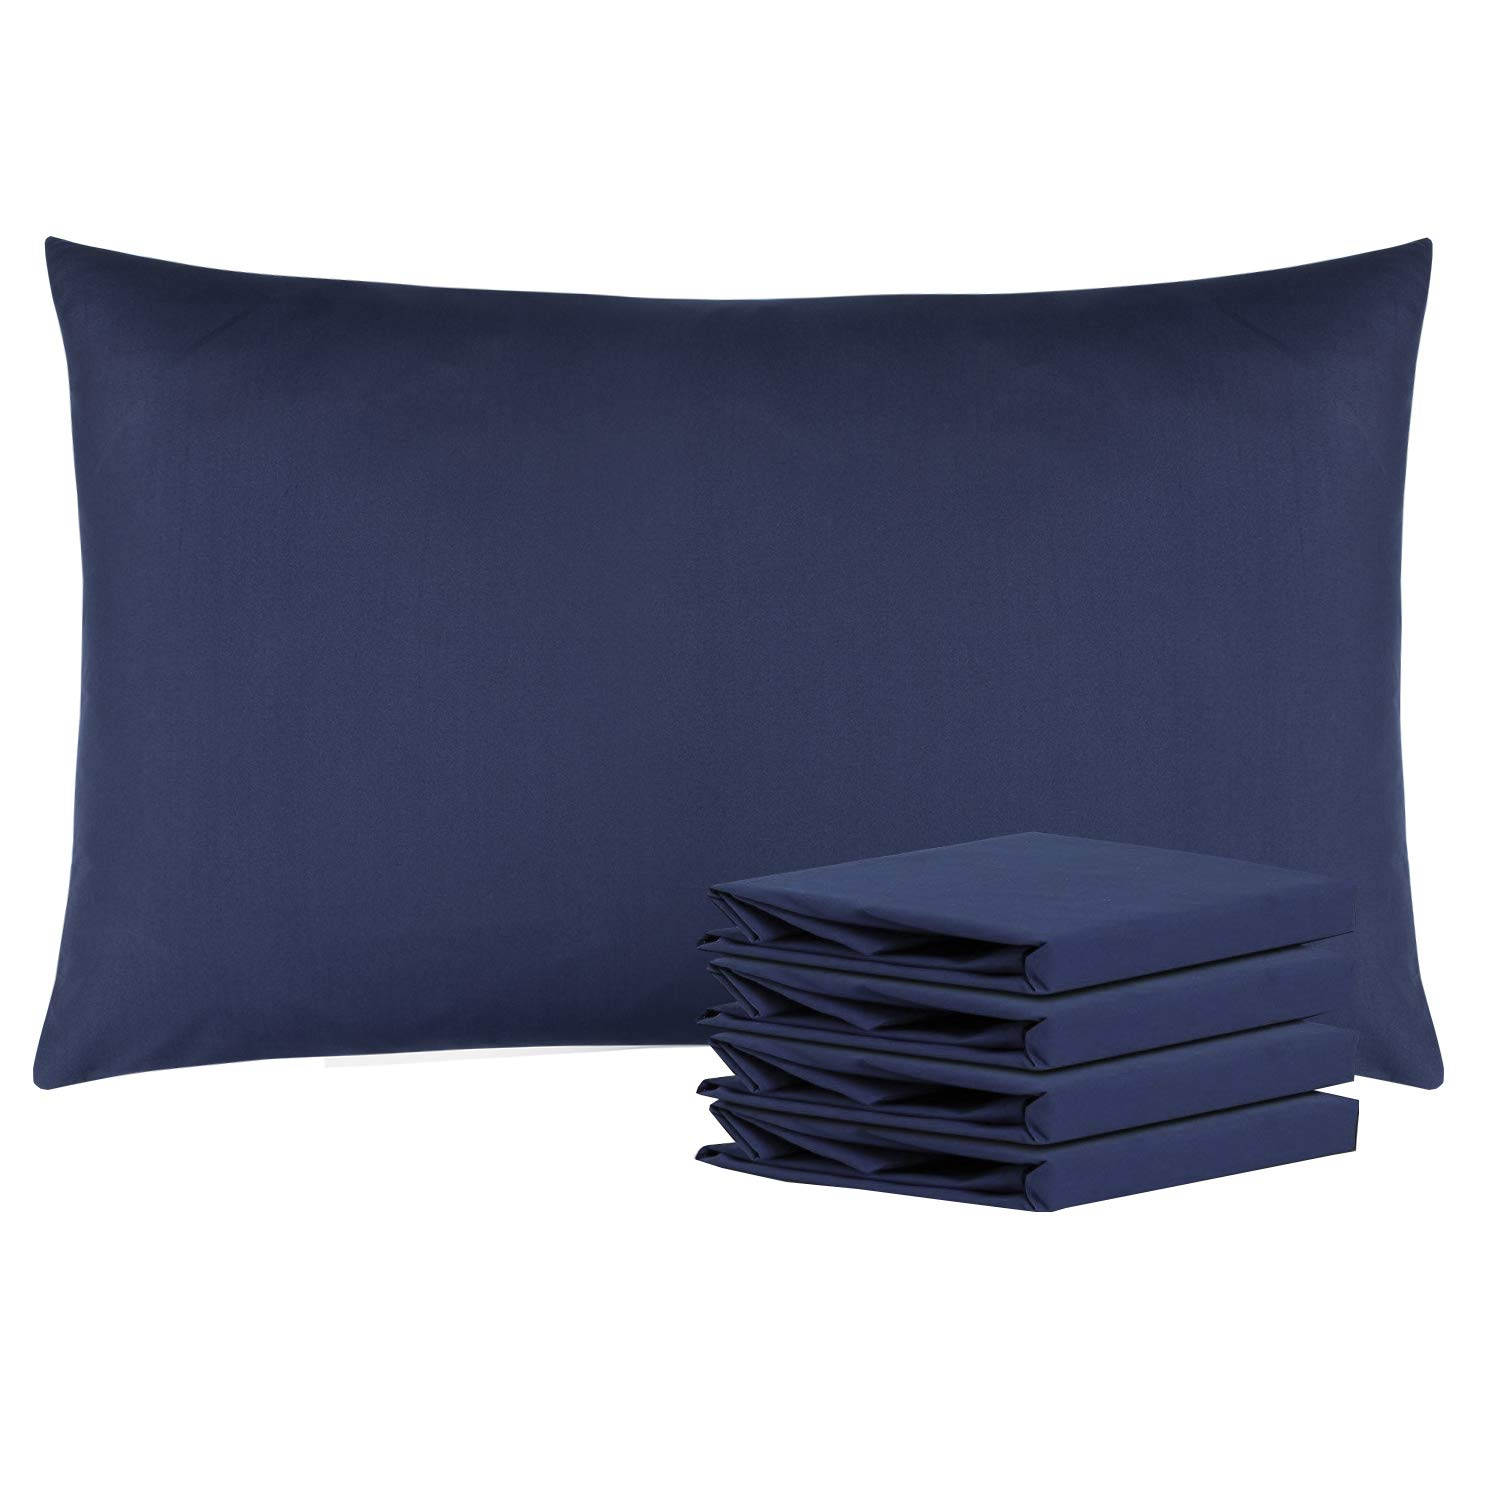 NTBAY Queen Pillowcases Set of 4, 100% Brushed Microfiber, Soft and Cozy, Wrinkle, Fade, Stain Resistant, with Envelope Closure, Navy